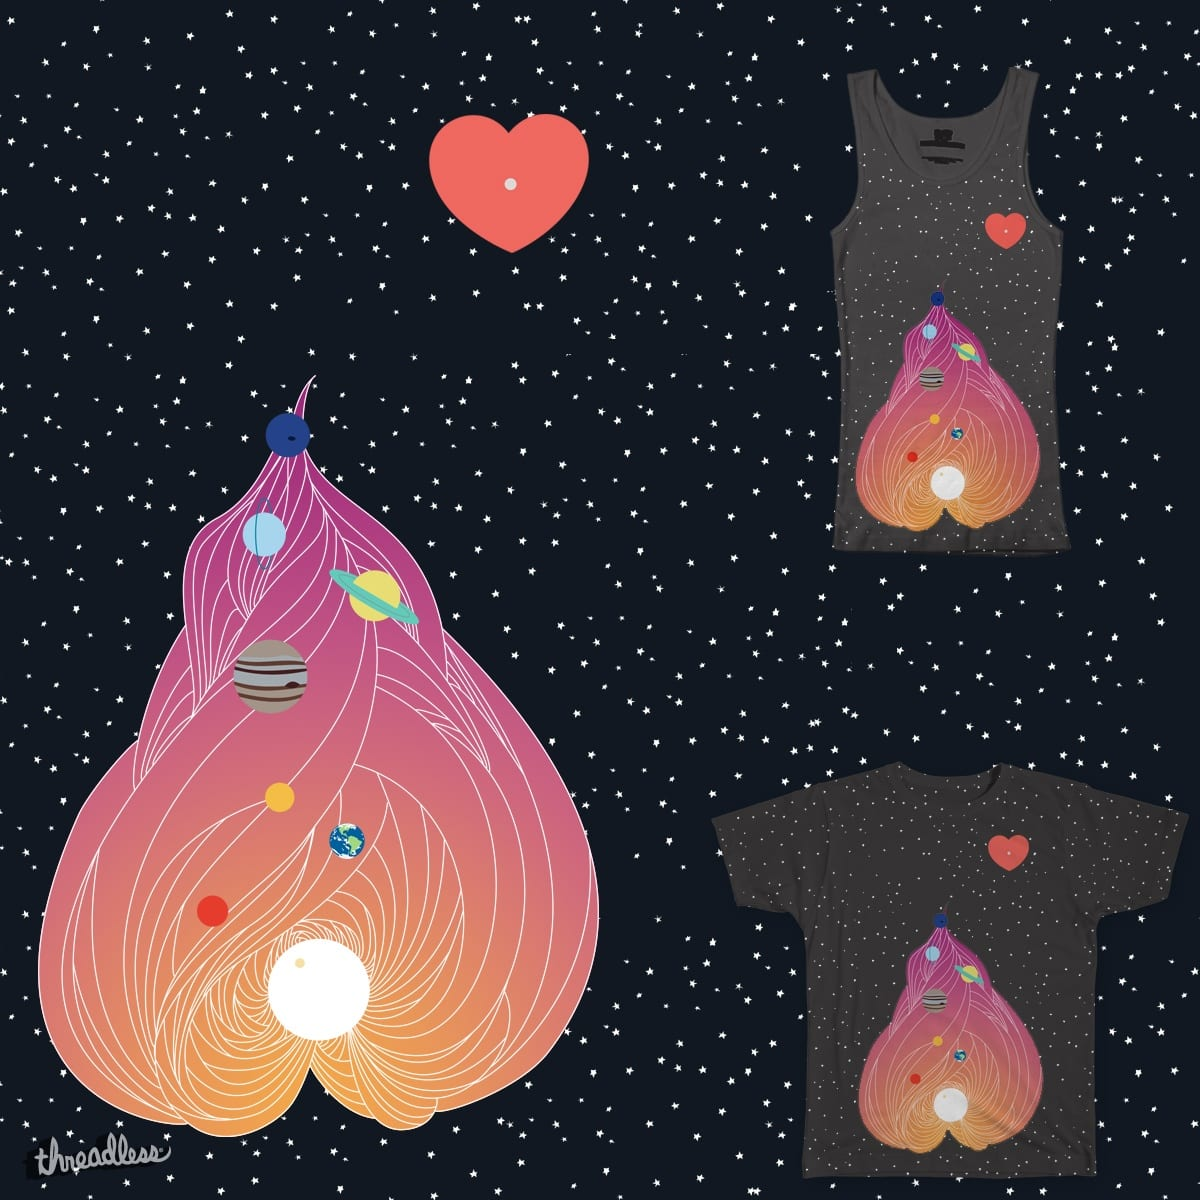 We Still Love You Pluto by kimchangestheworld4ever on Threadless